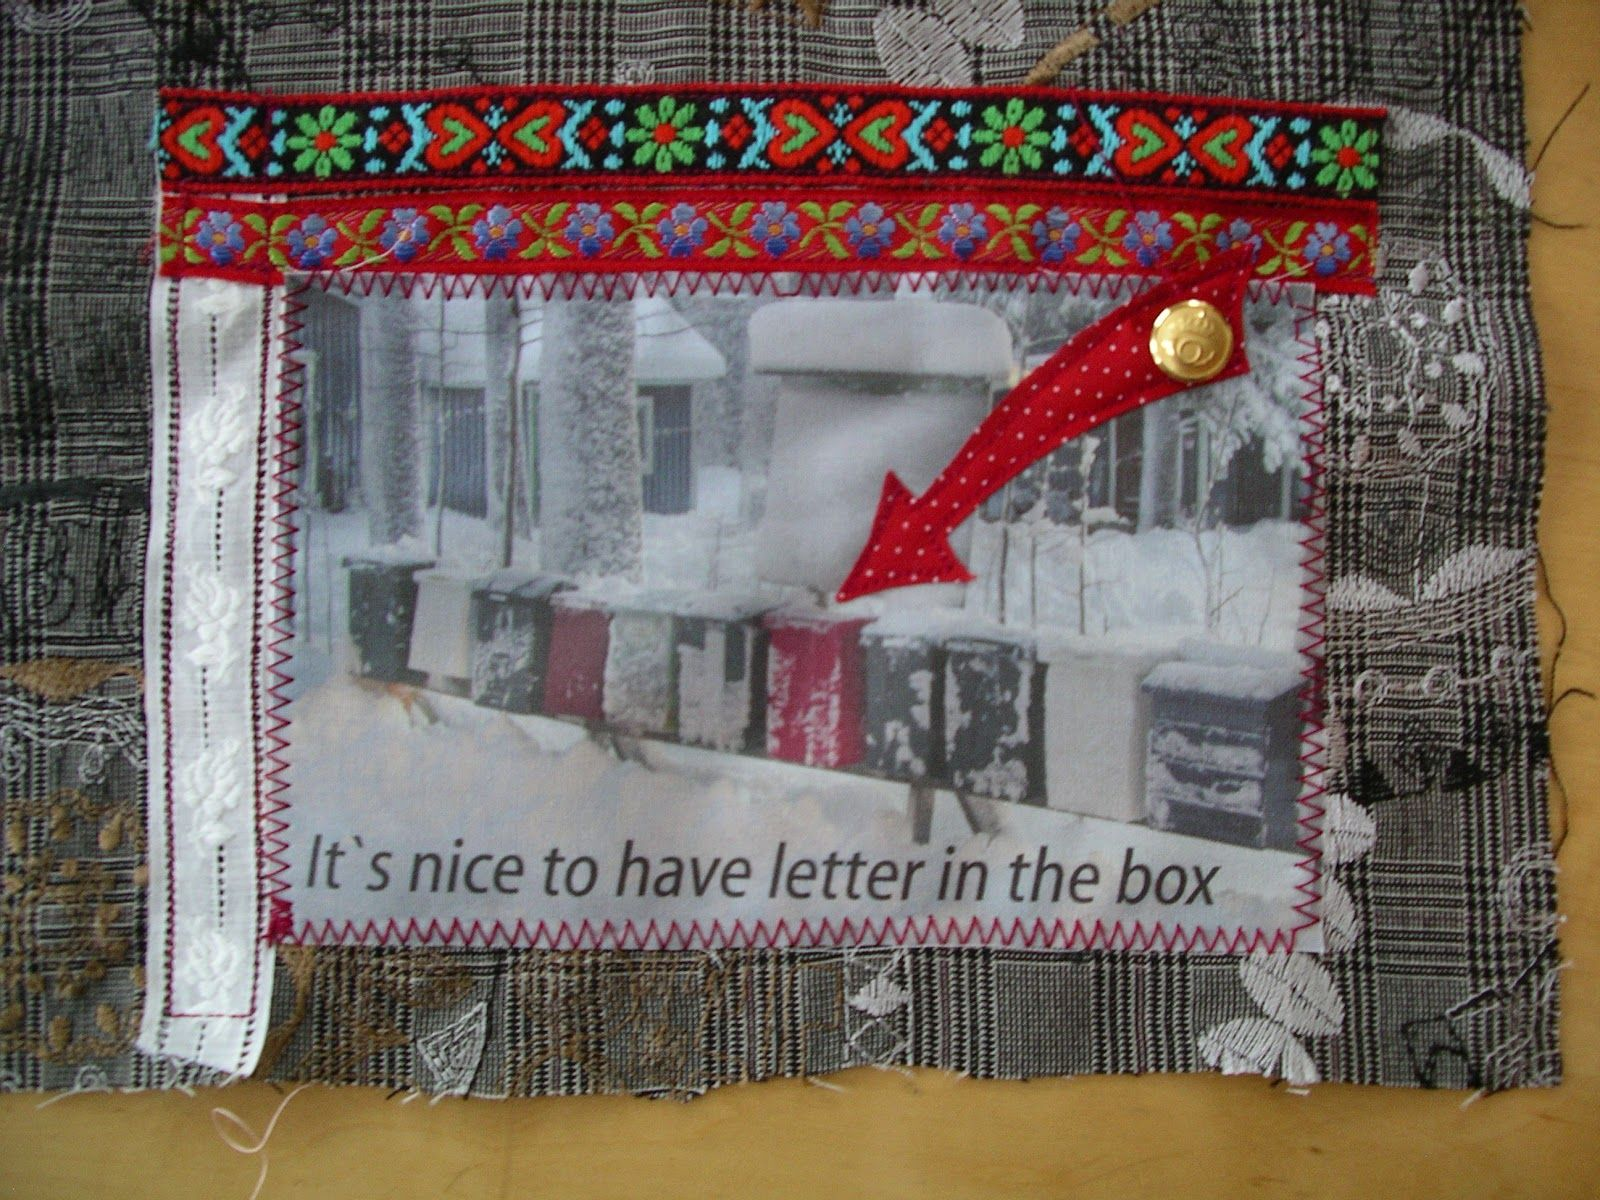 Postcard from Lena in Sweden, made for the #diypostcardswap 2012.